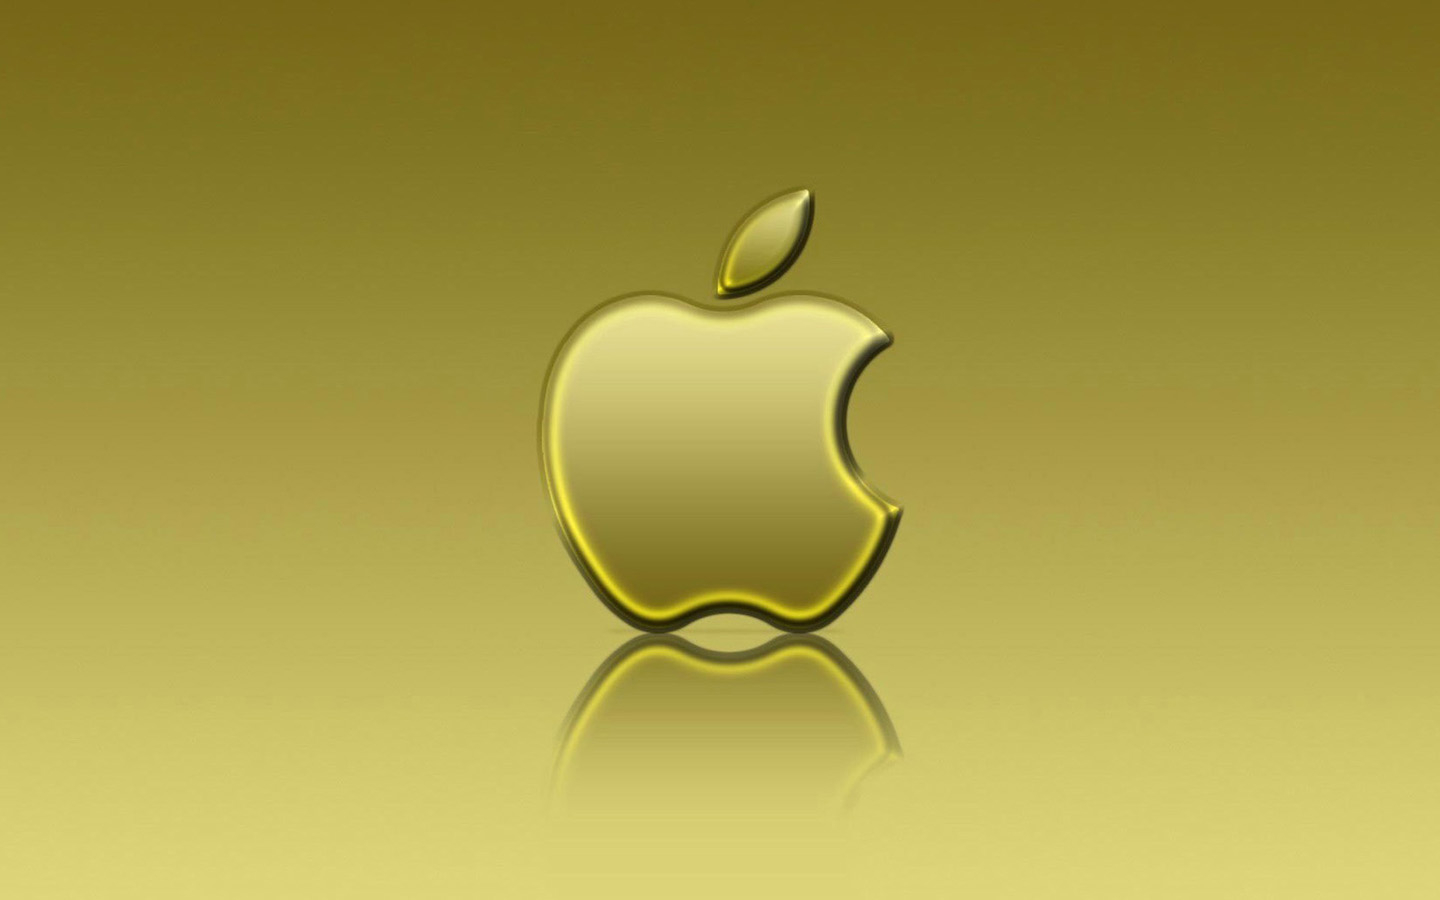 ibomiTx apple iphone wallpapers hd group gold and black